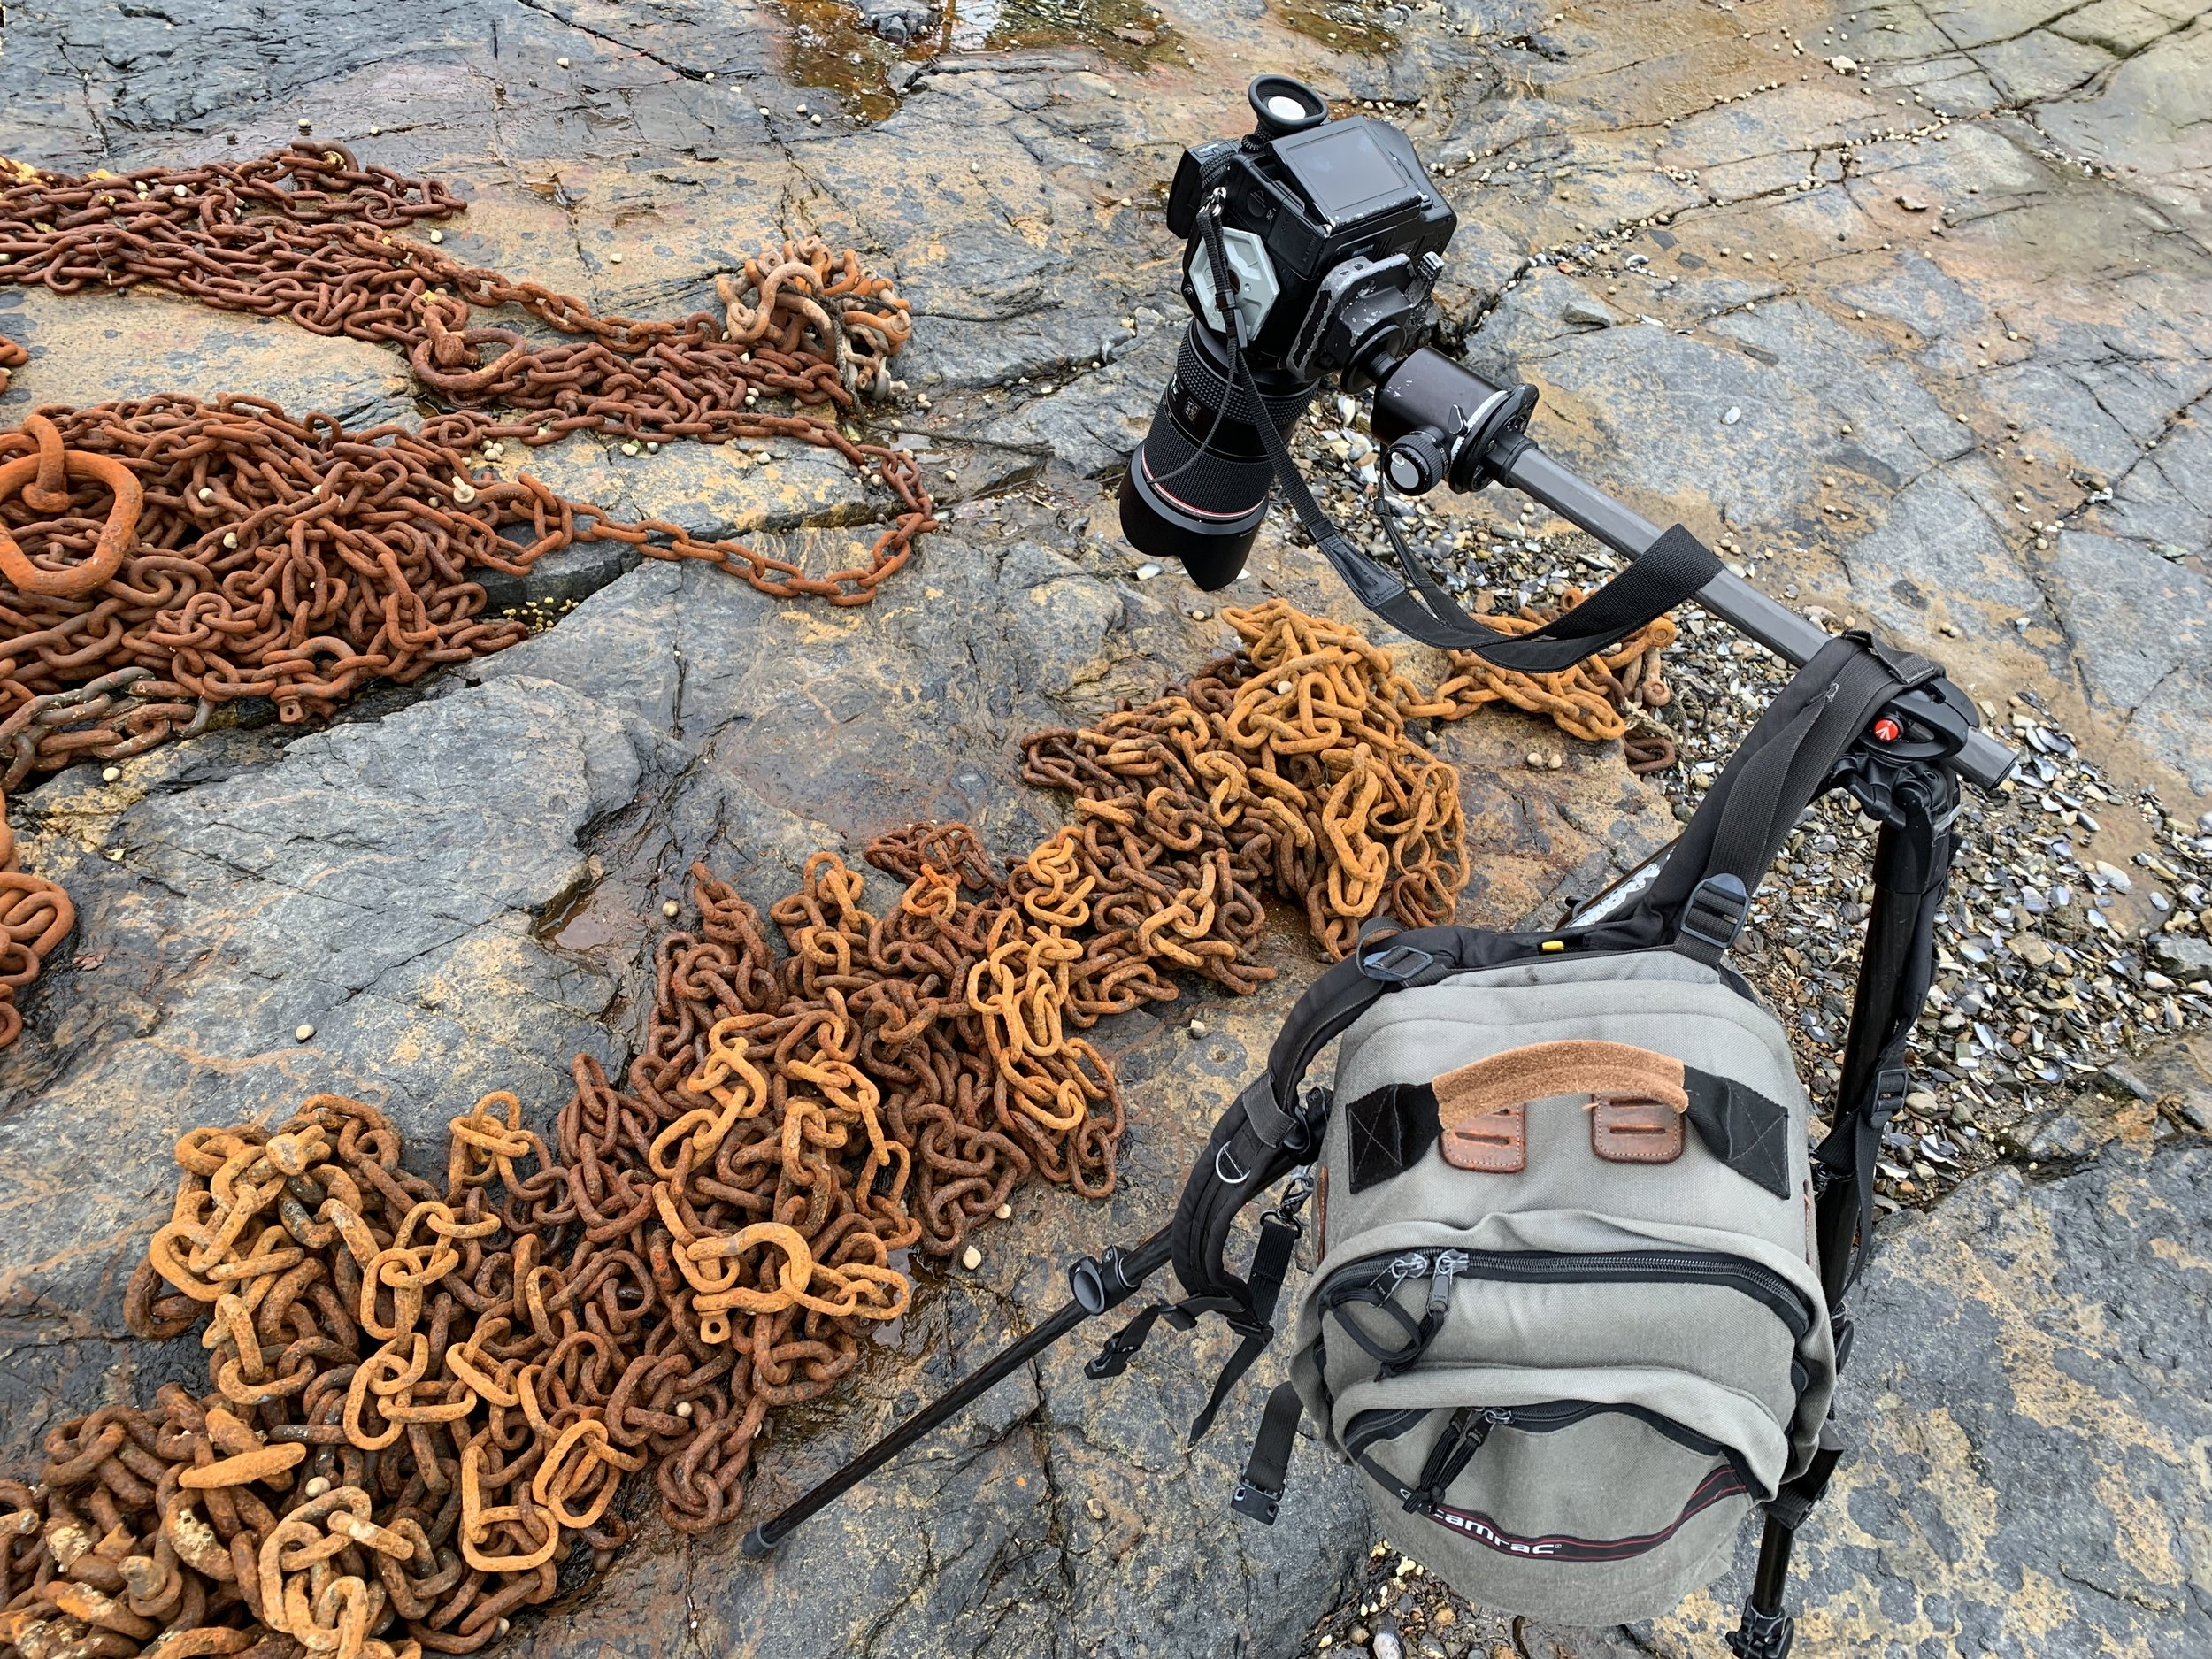 Center column extended out while photographing chains at Northeast Harbor, with camera bag as counterweight